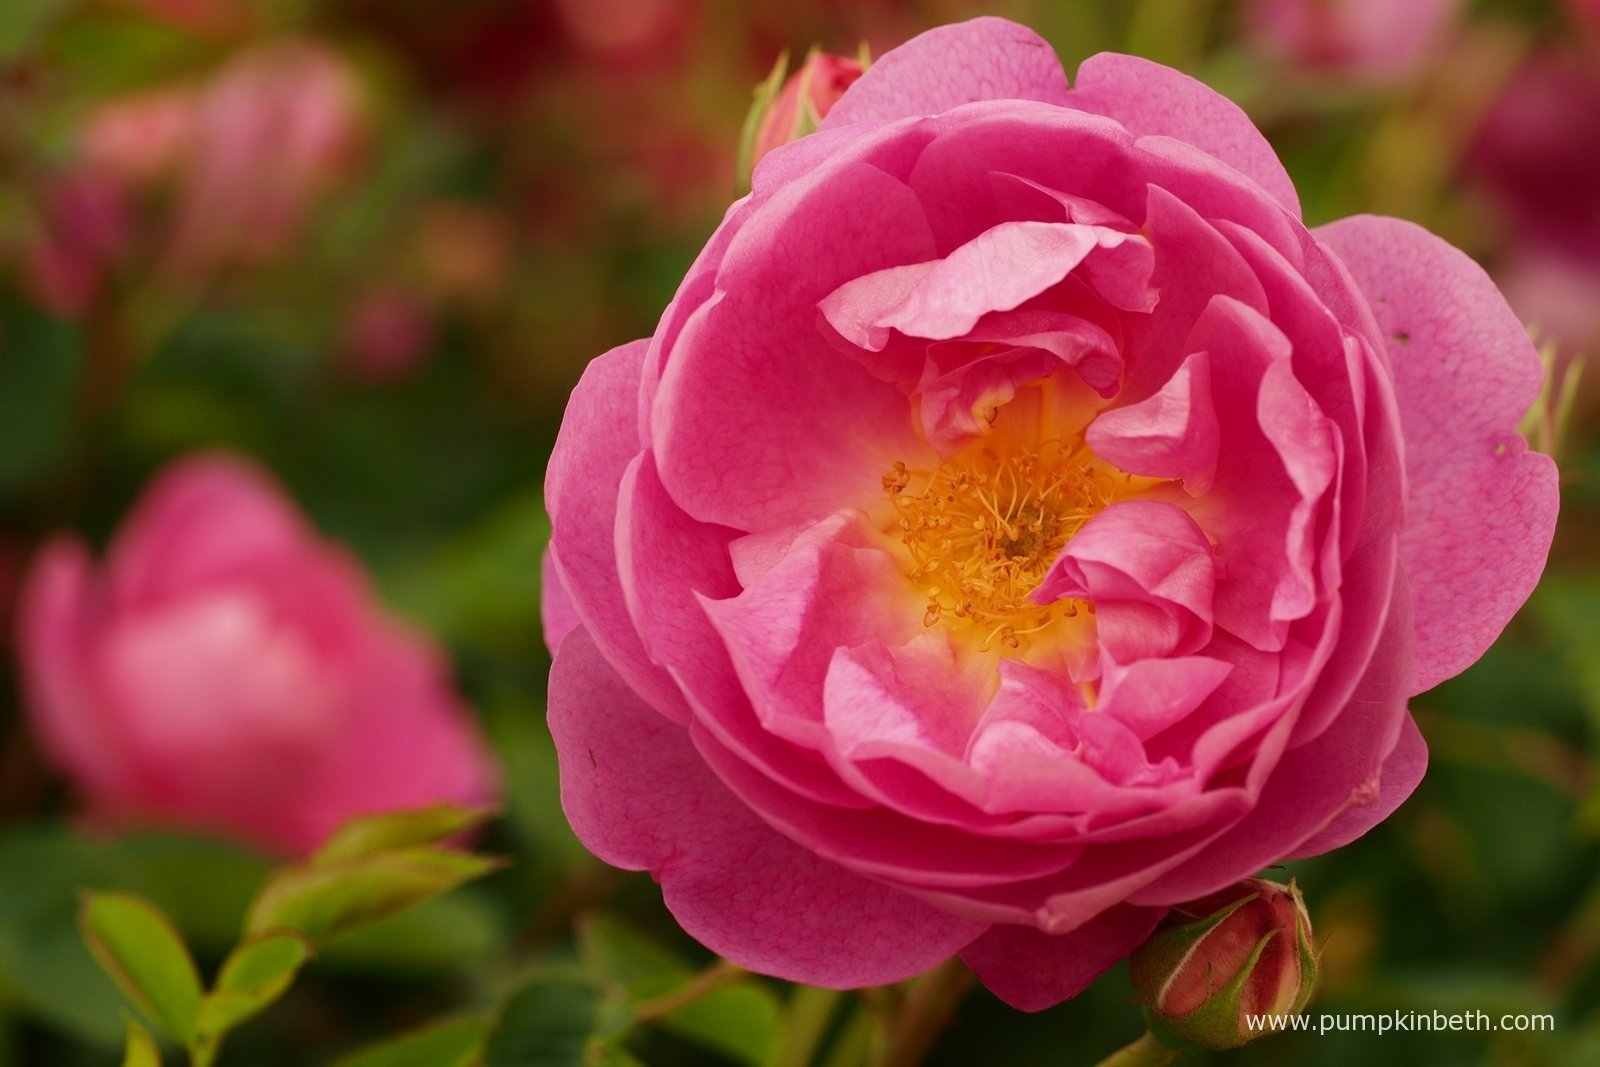 The festival of roses at the rhs hampton court palace flower show 2015 pumpkin beth - Royal flower show ...